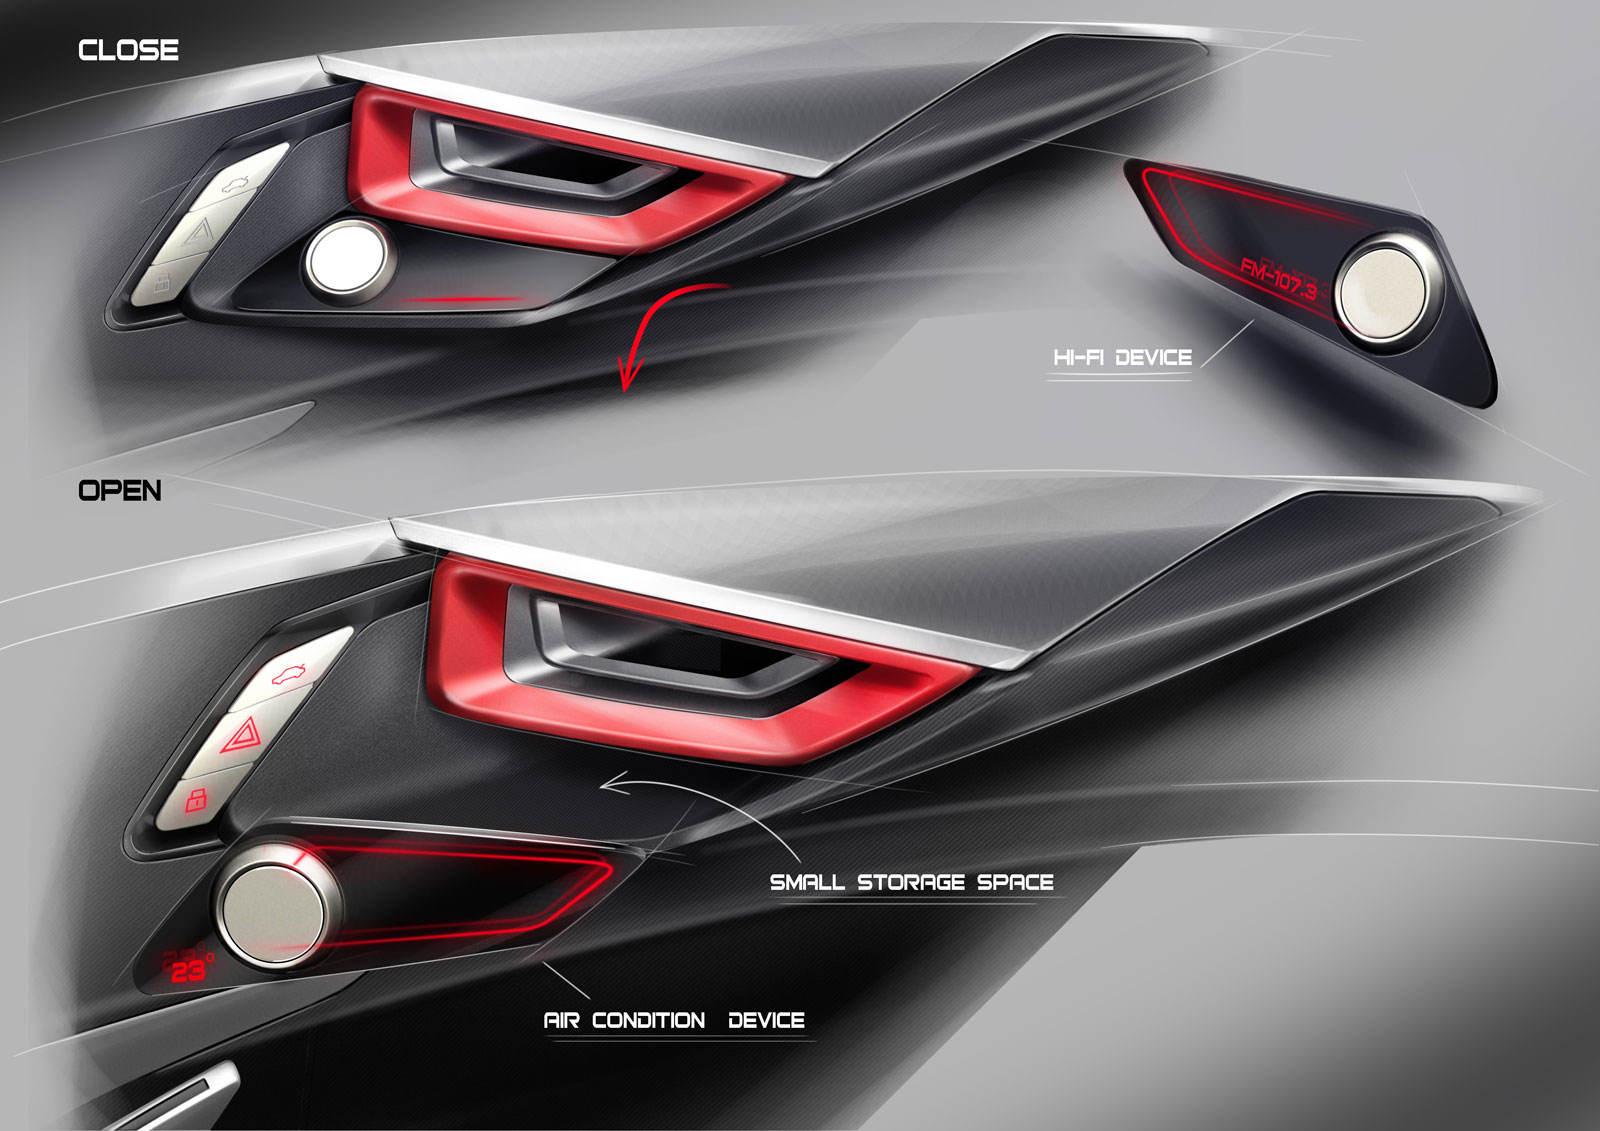 spd concept car interior design sketches car body design. Black Bedroom Furniture Sets. Home Design Ideas